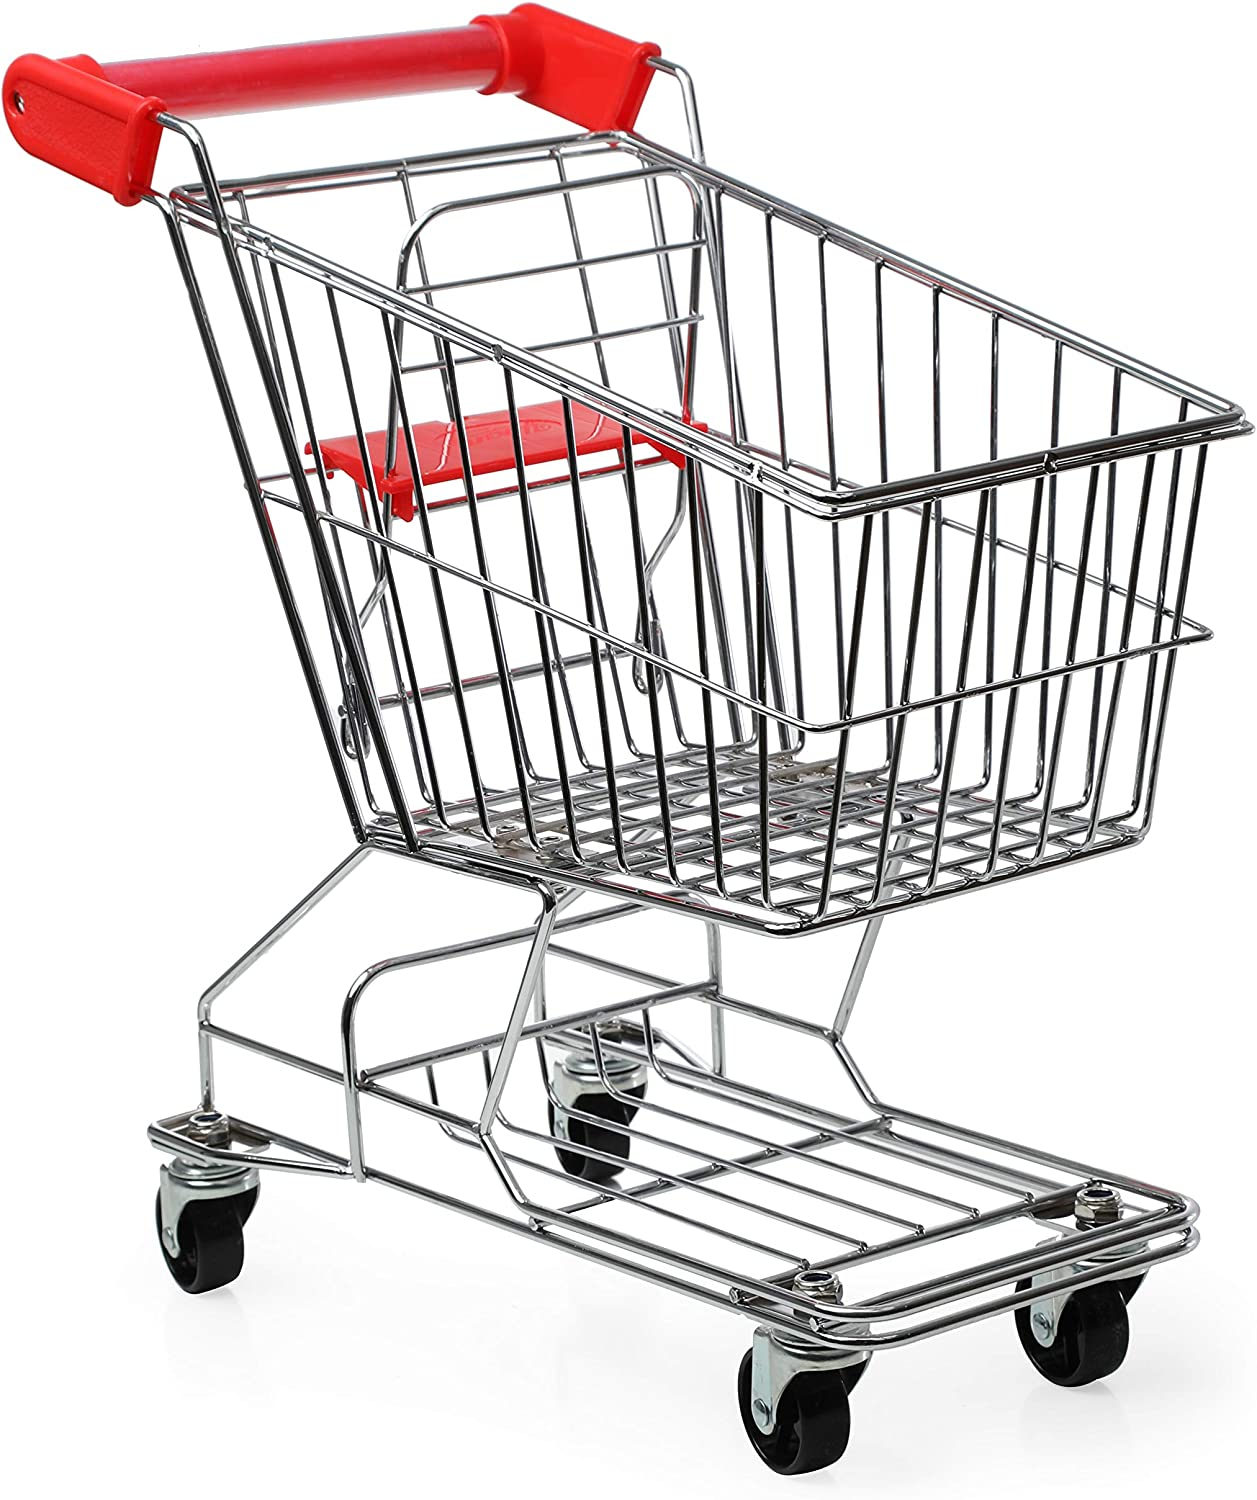 Mommy and Me Shopping Cart for Kids, Pretend Play- Grocery and Supermarket Food Shopping, Made with Heavy Metal Frame